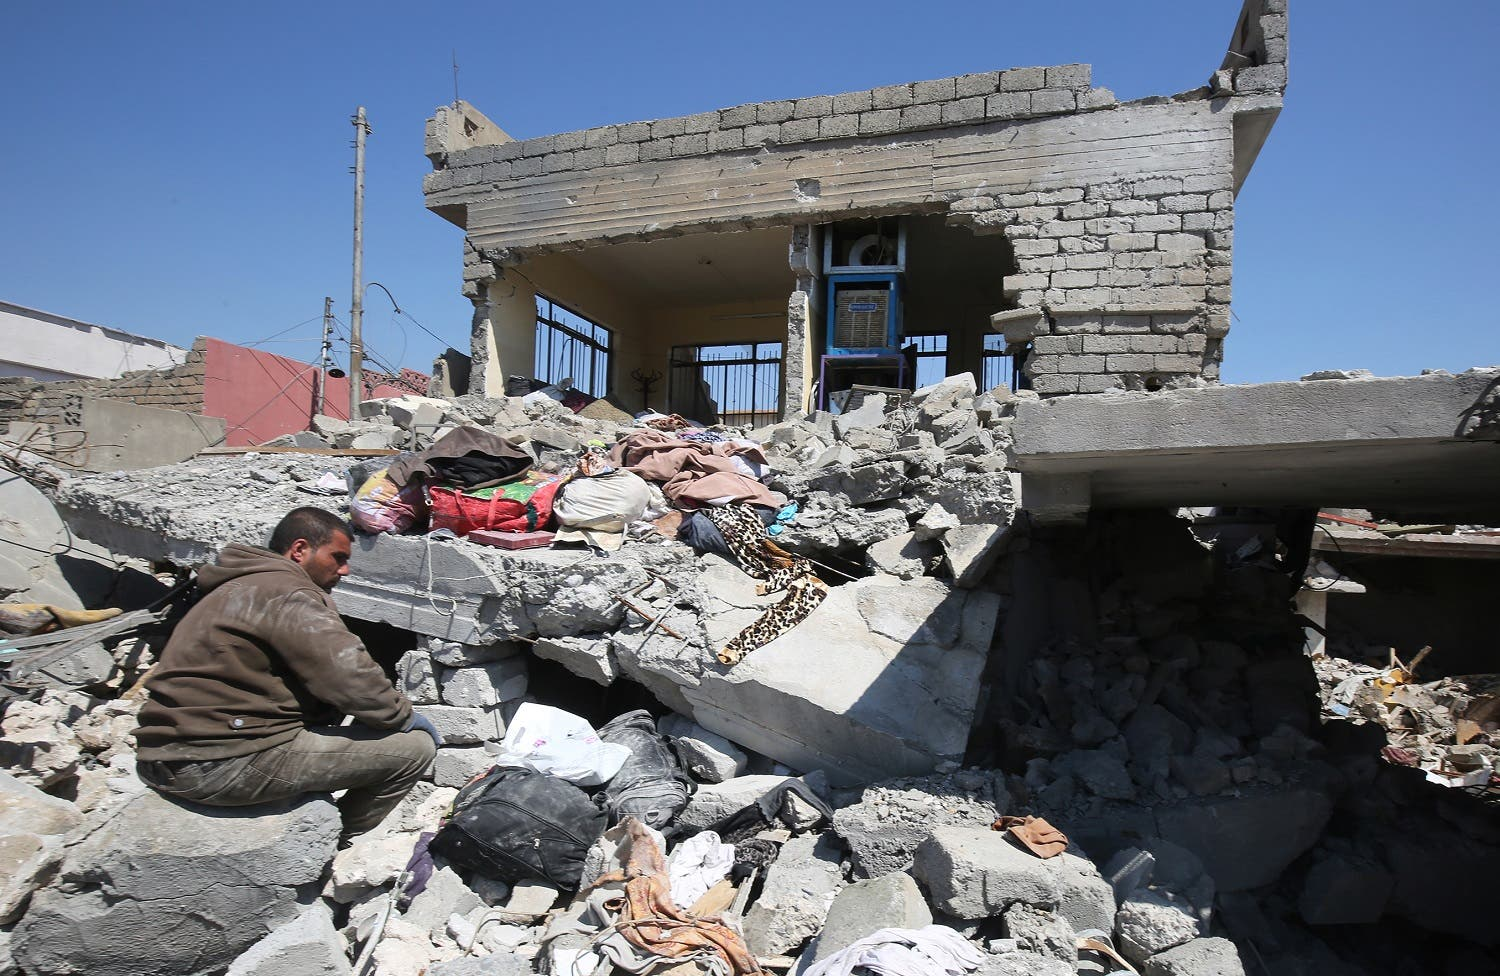 An Iraqi man sits amid the rubble of destroyed houses in the Mosul al-Jadida area on March 26, 2017. (AFP)